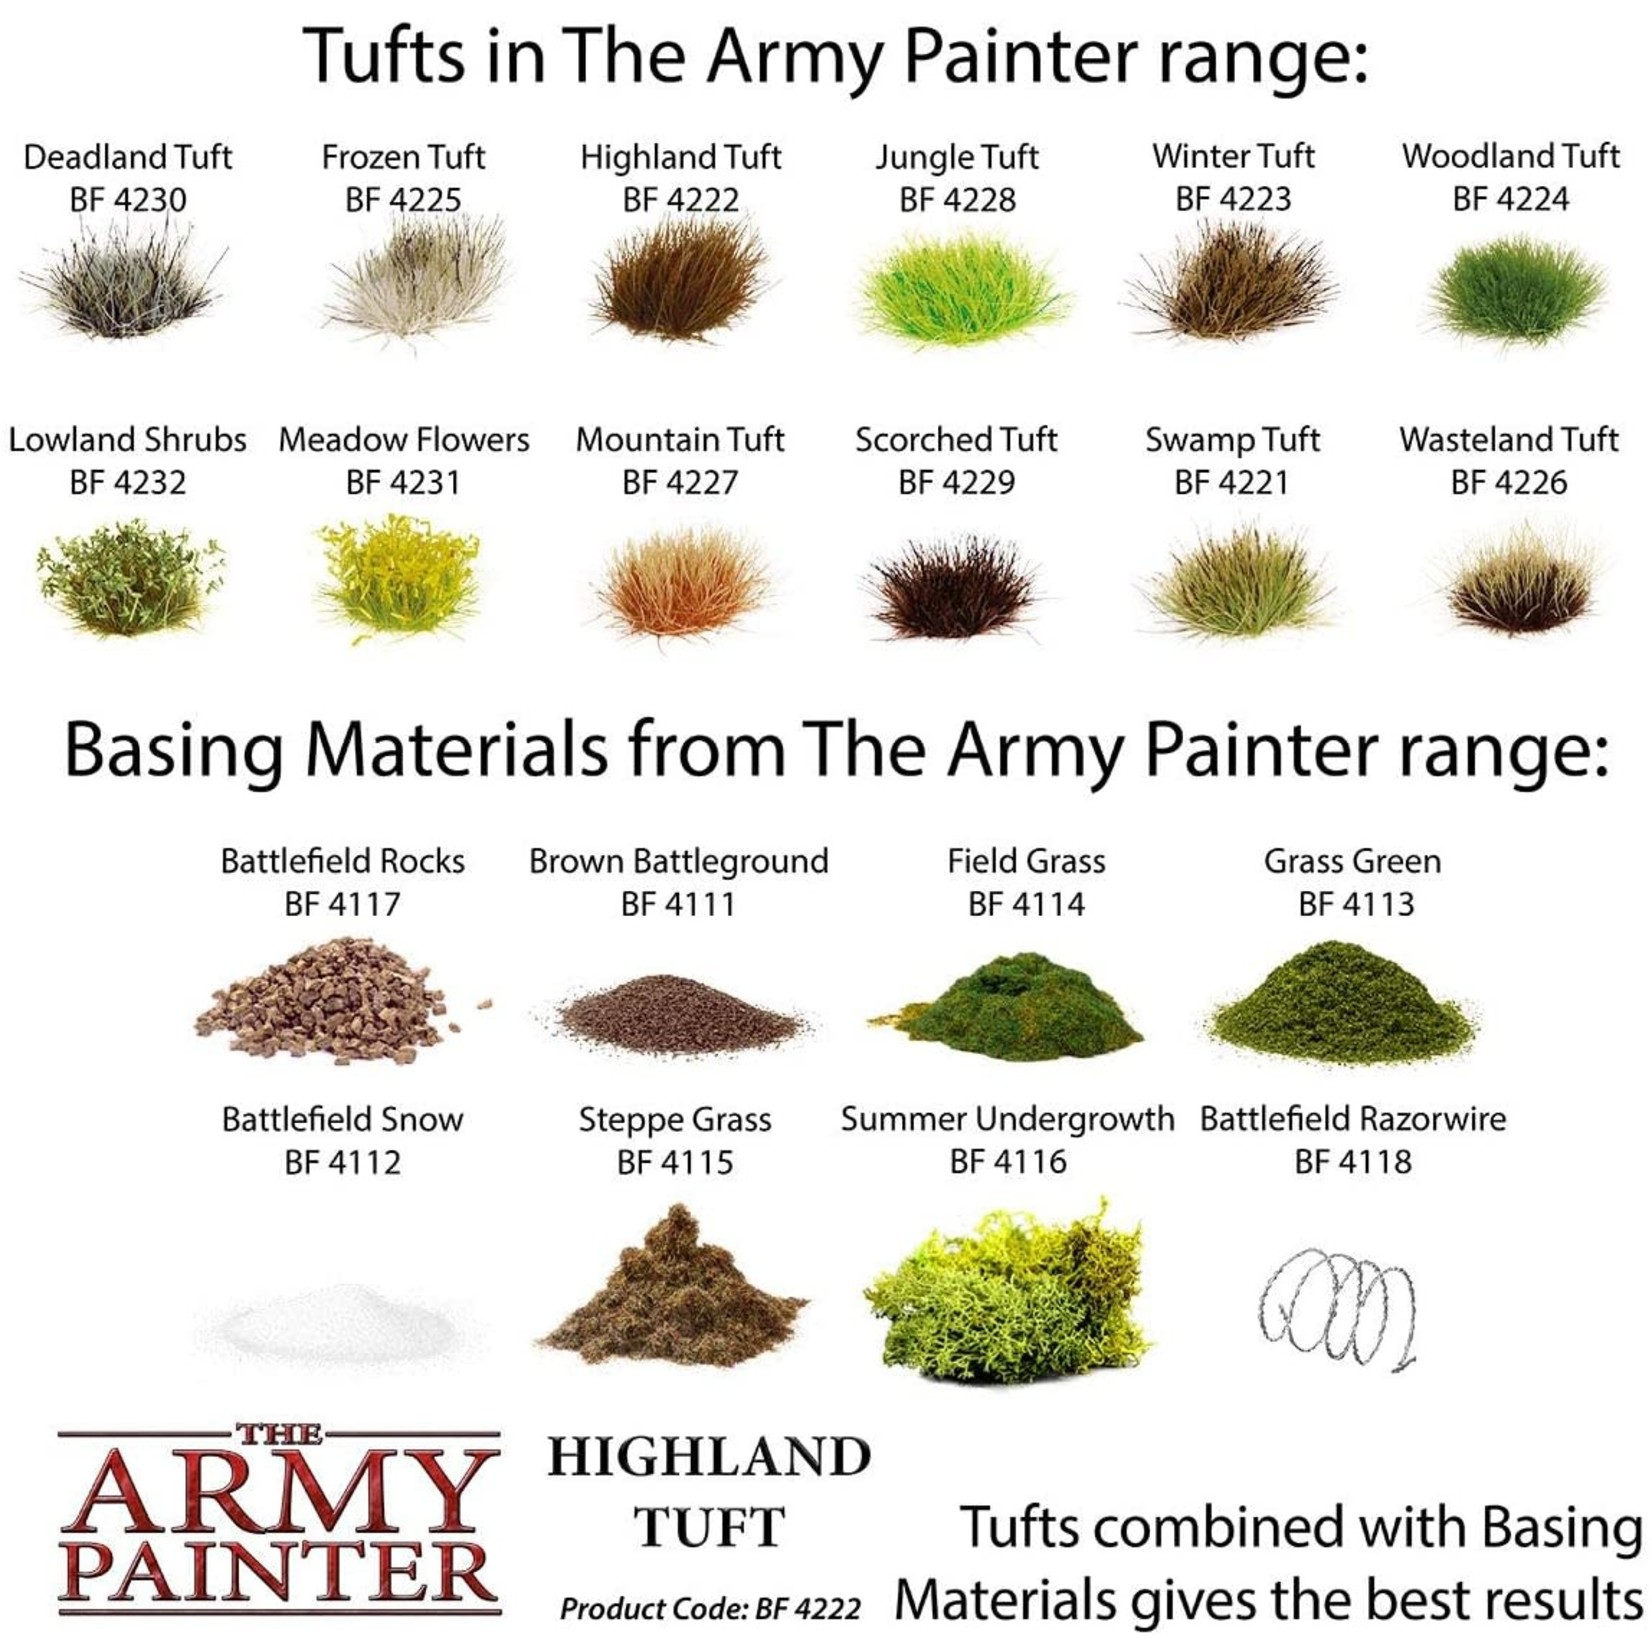 THE ARMY PAINTER HIGHLAND TUFT